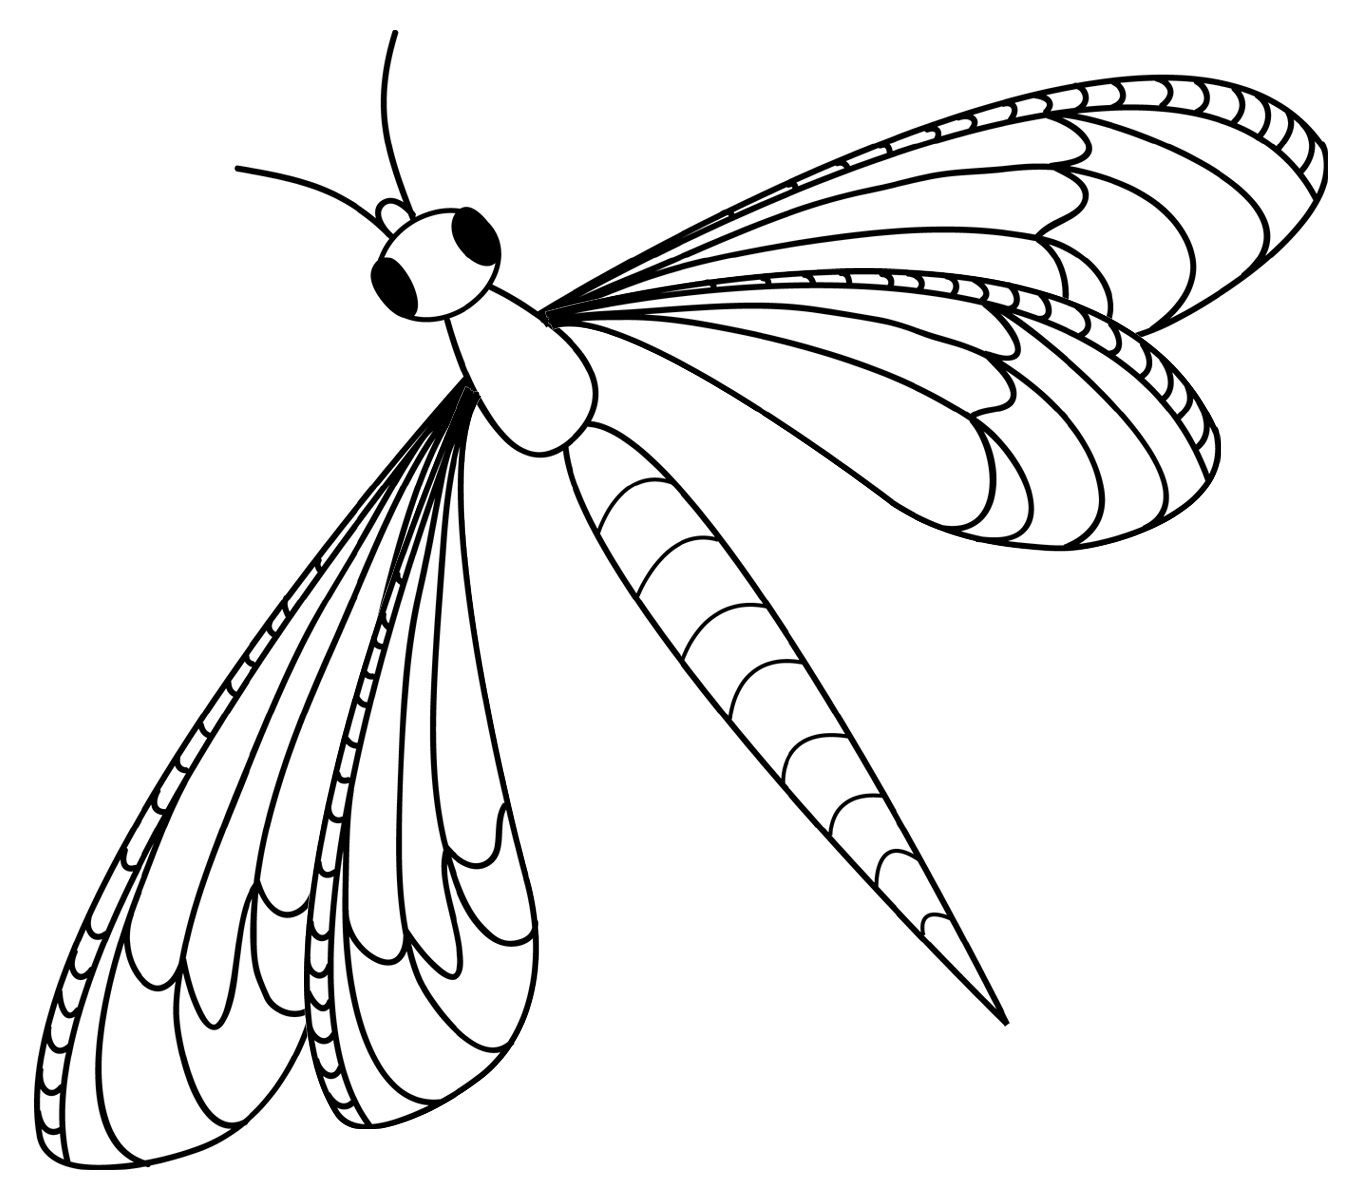 Insect Drawing For Kids At GetDrawings